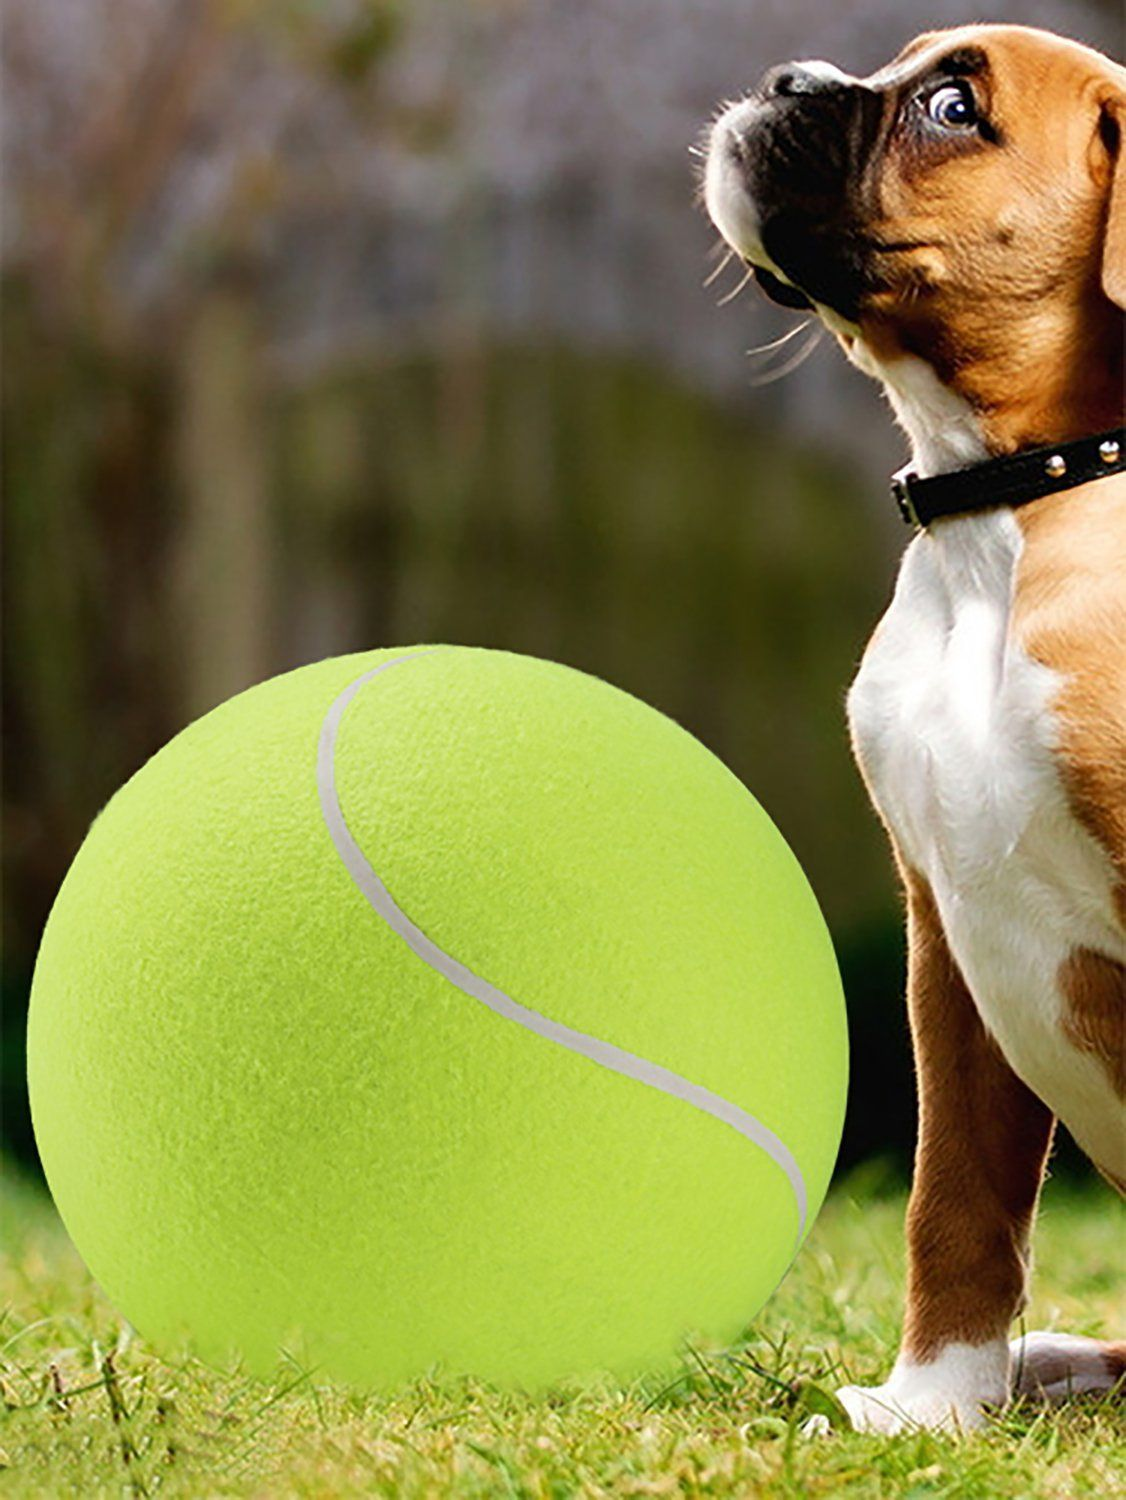 9 4 Inch Tennis Ball Signature Signal Mega Jumbo Larger Pets Toys Dogs Outdoor Sports Cricket One Size Yellow Mor Dog Toys Dog Toy Ball